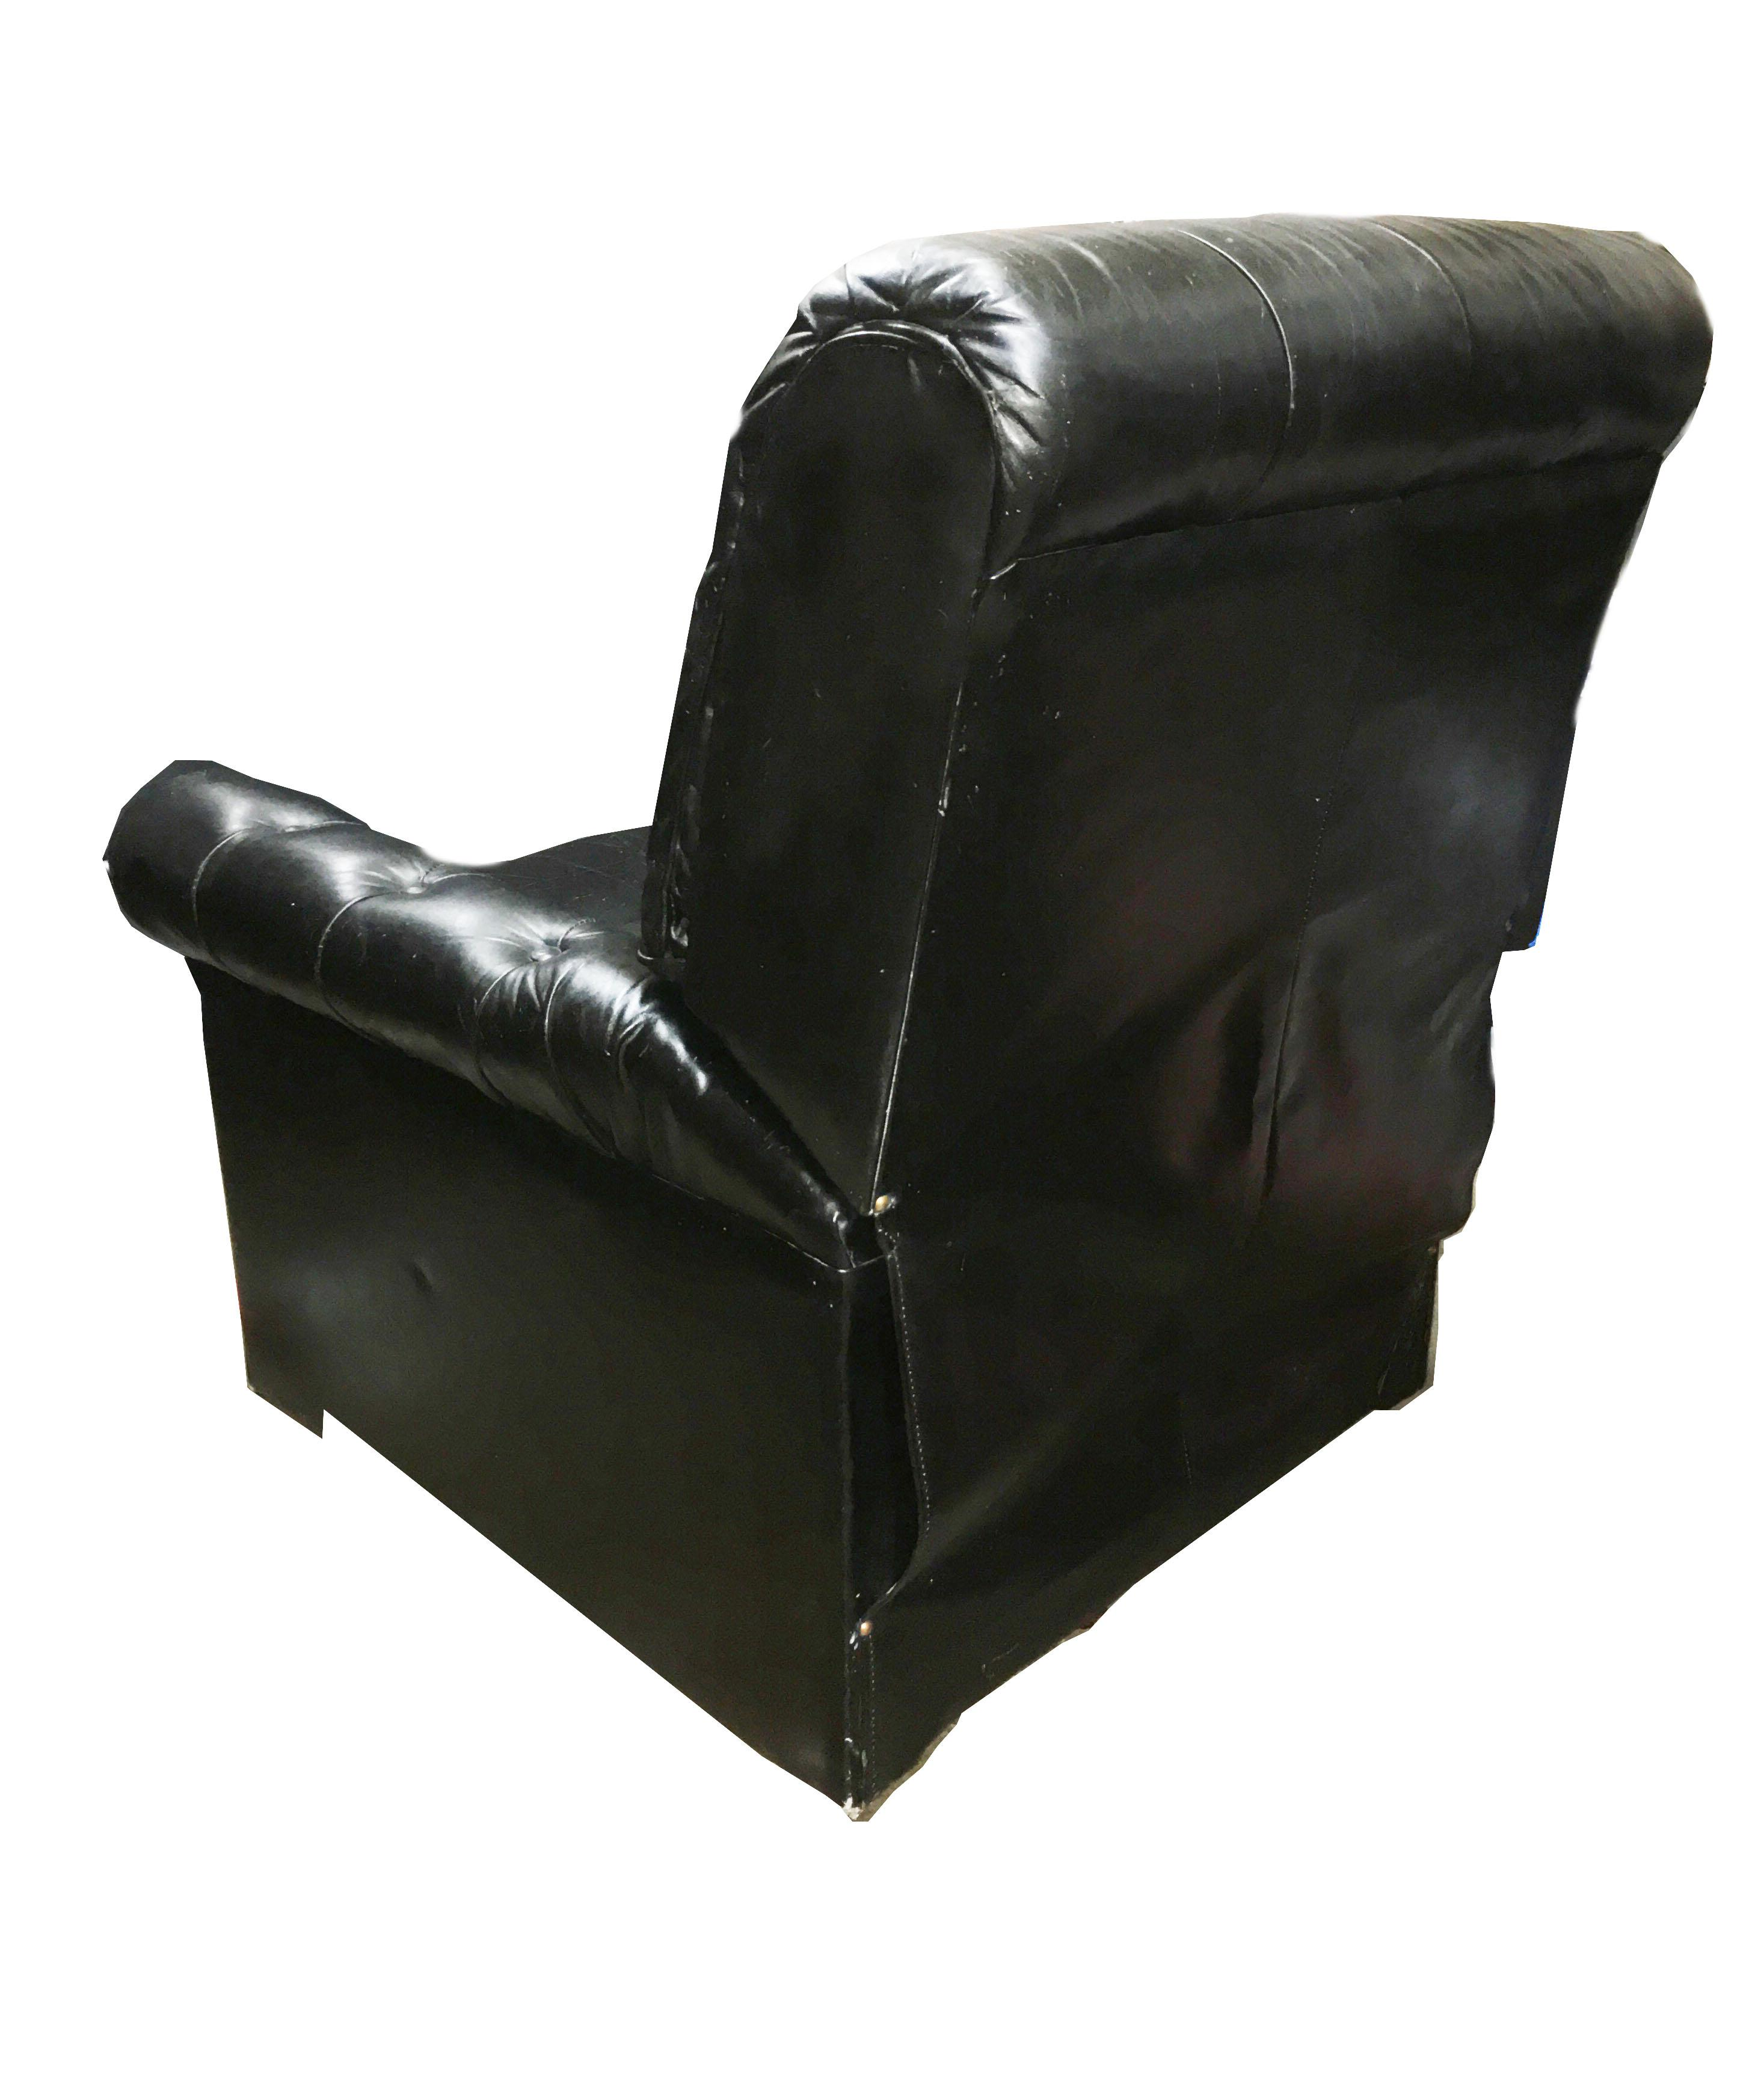 Good Mid Century Chesterfield Black Tufted Leather Recliner Chair   Image 5 Of 7